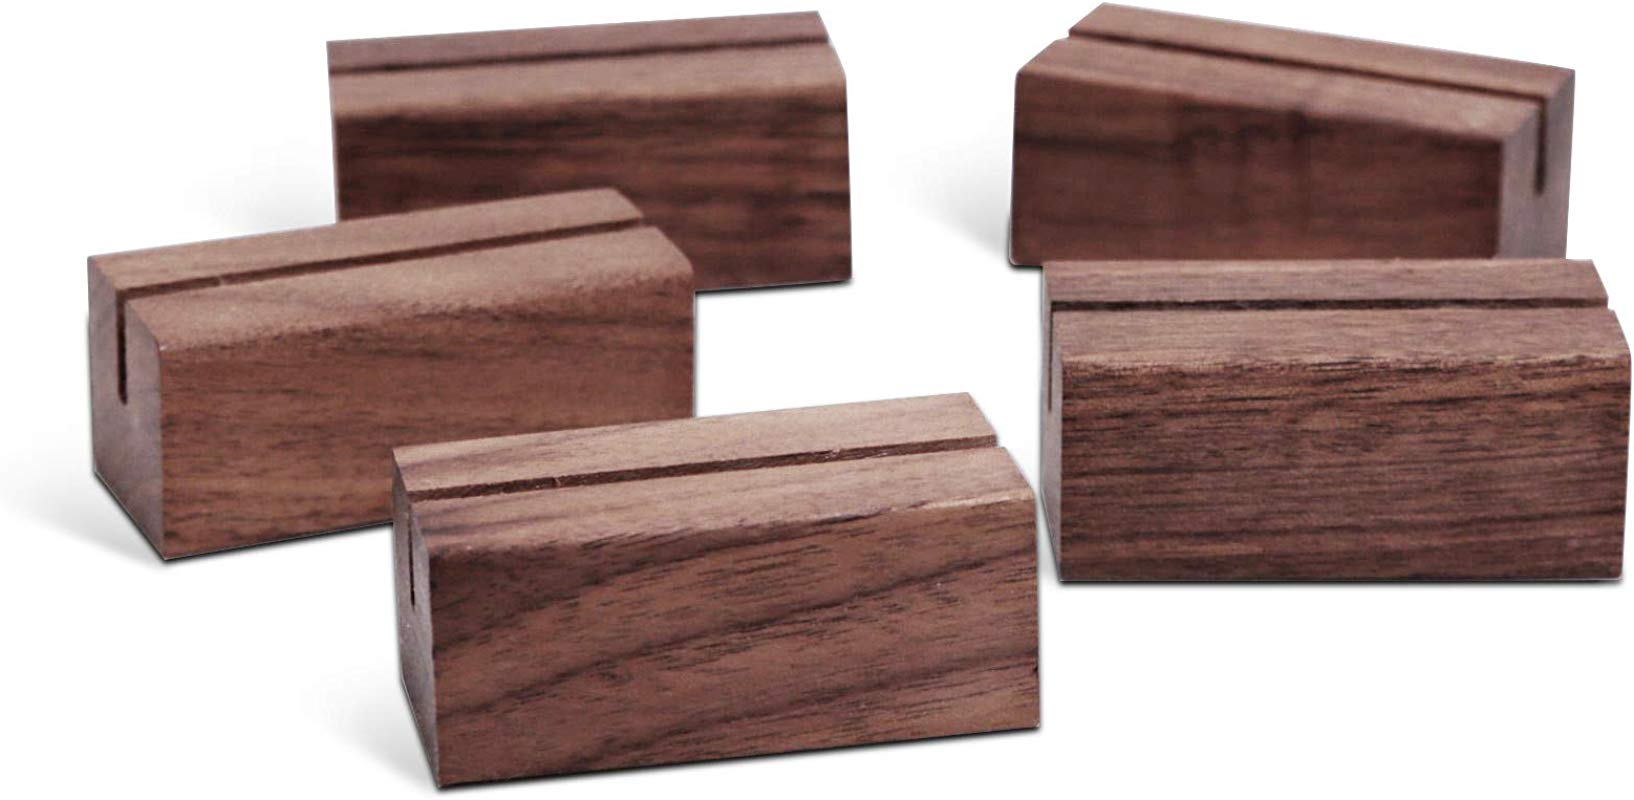 UNIQOOO 20 Pack Place Card Holders Rustic Walnut Wood Escort Cards Display Stands Table Number Sign Stand Photo Stand Perfect For Retail Shop Cafe Home Wedding Dinner Party Events Decoration